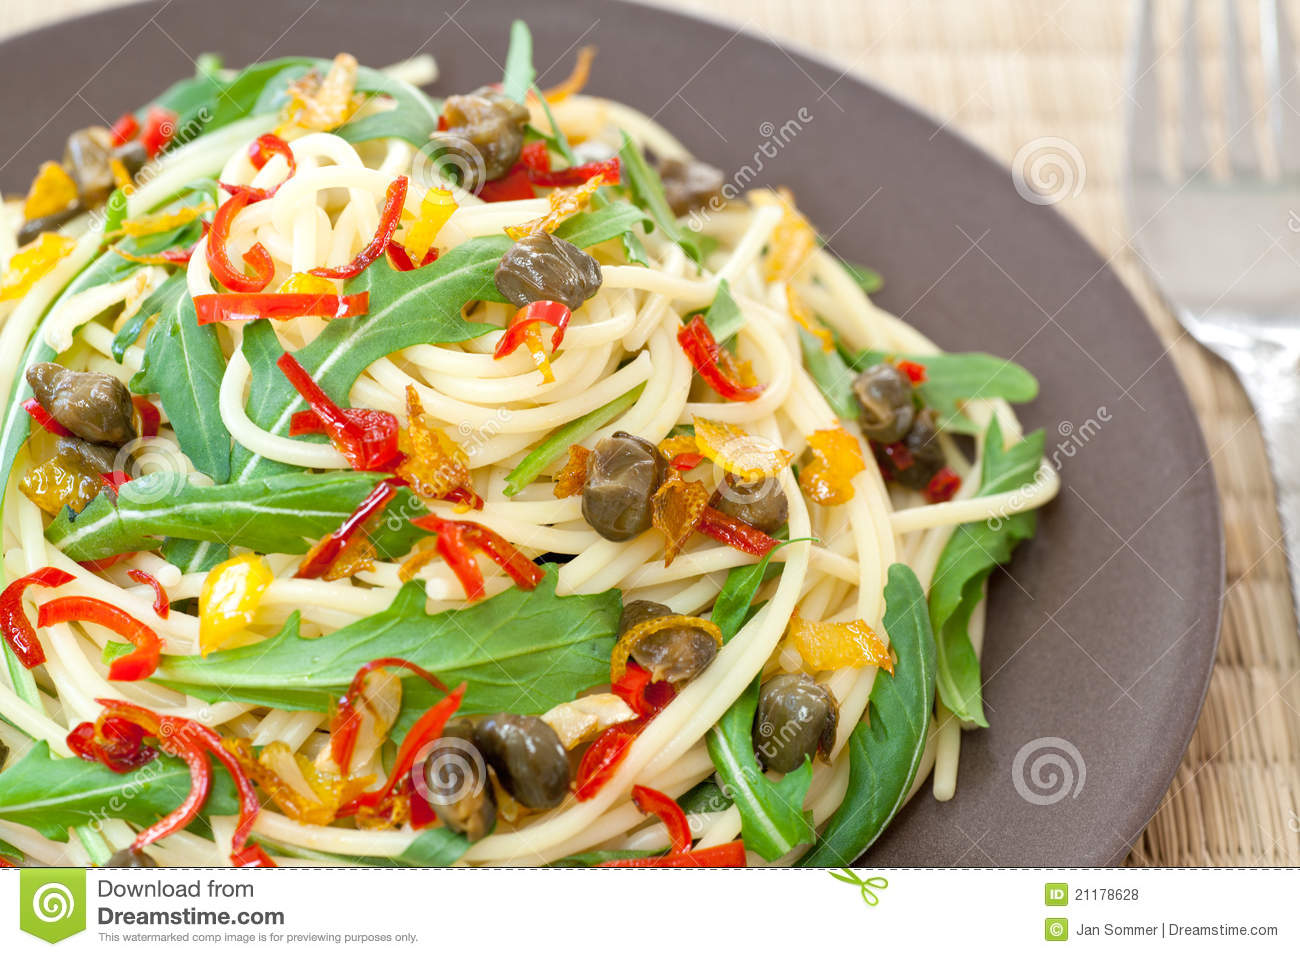 Spaghetti with arugula, chili and onions